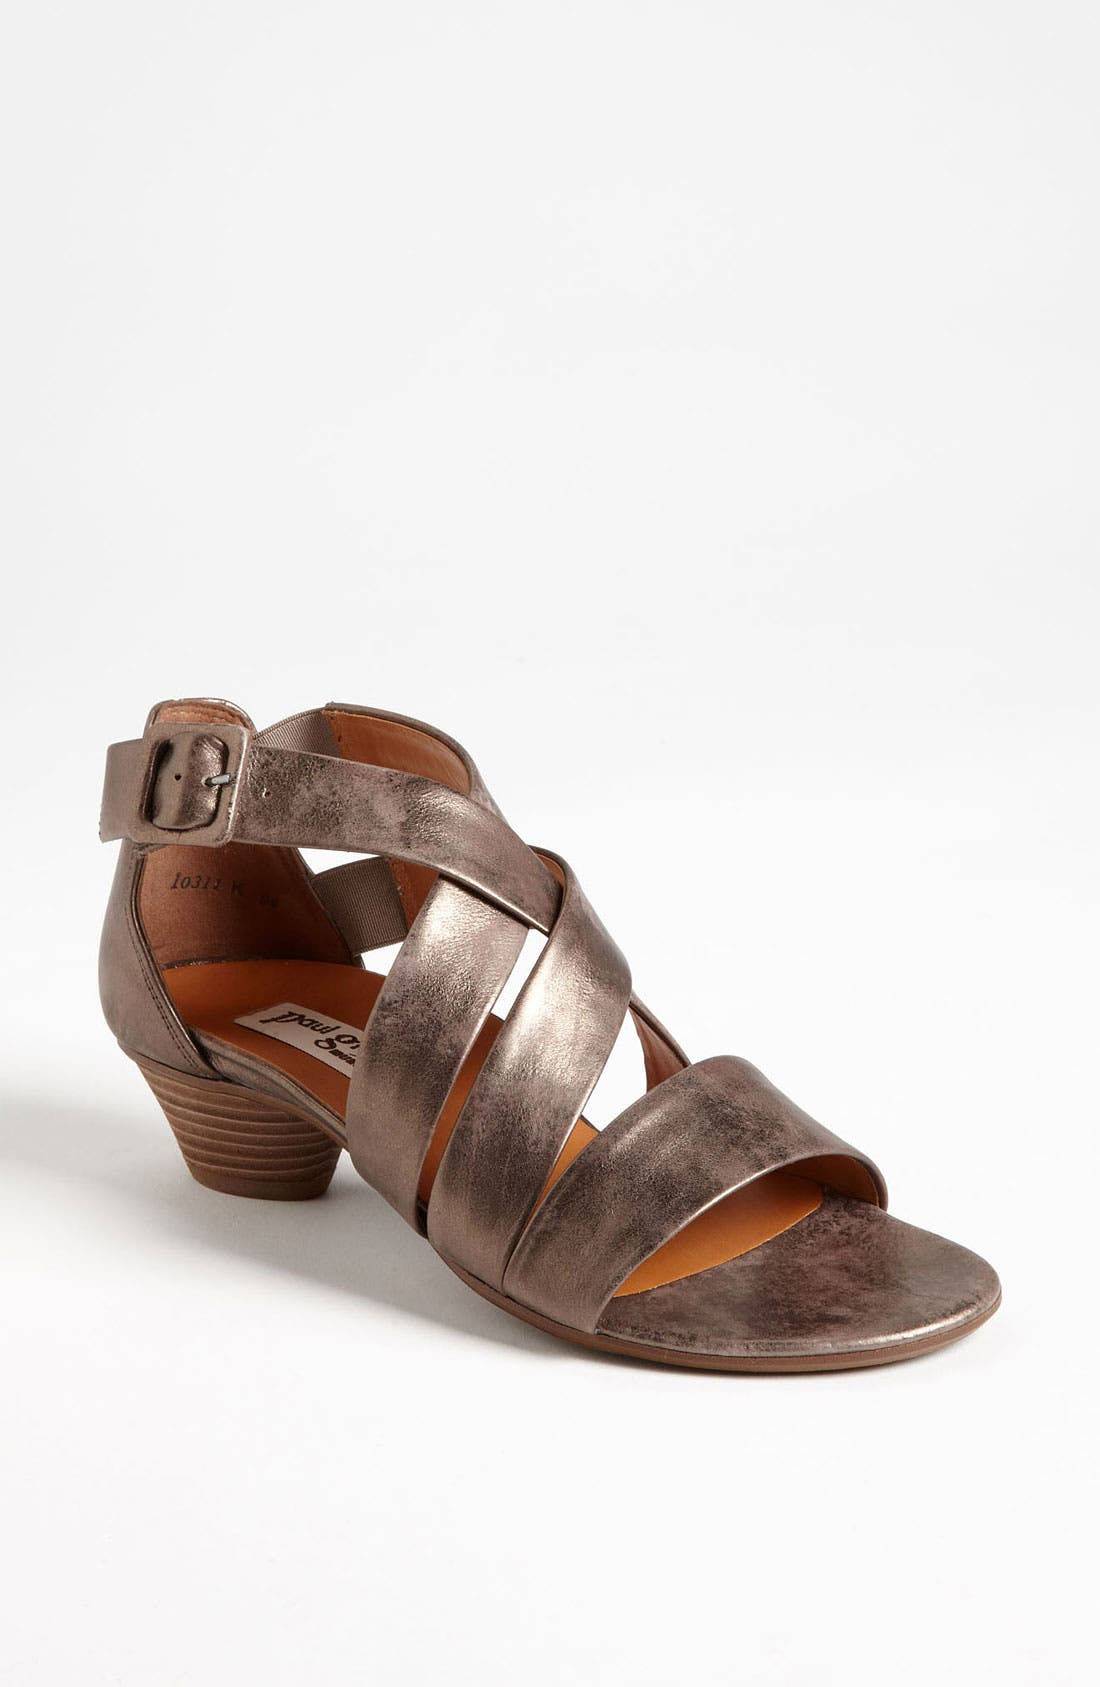 Alternate Image 1 Selected - Paul Green 'Lupe' Sandal